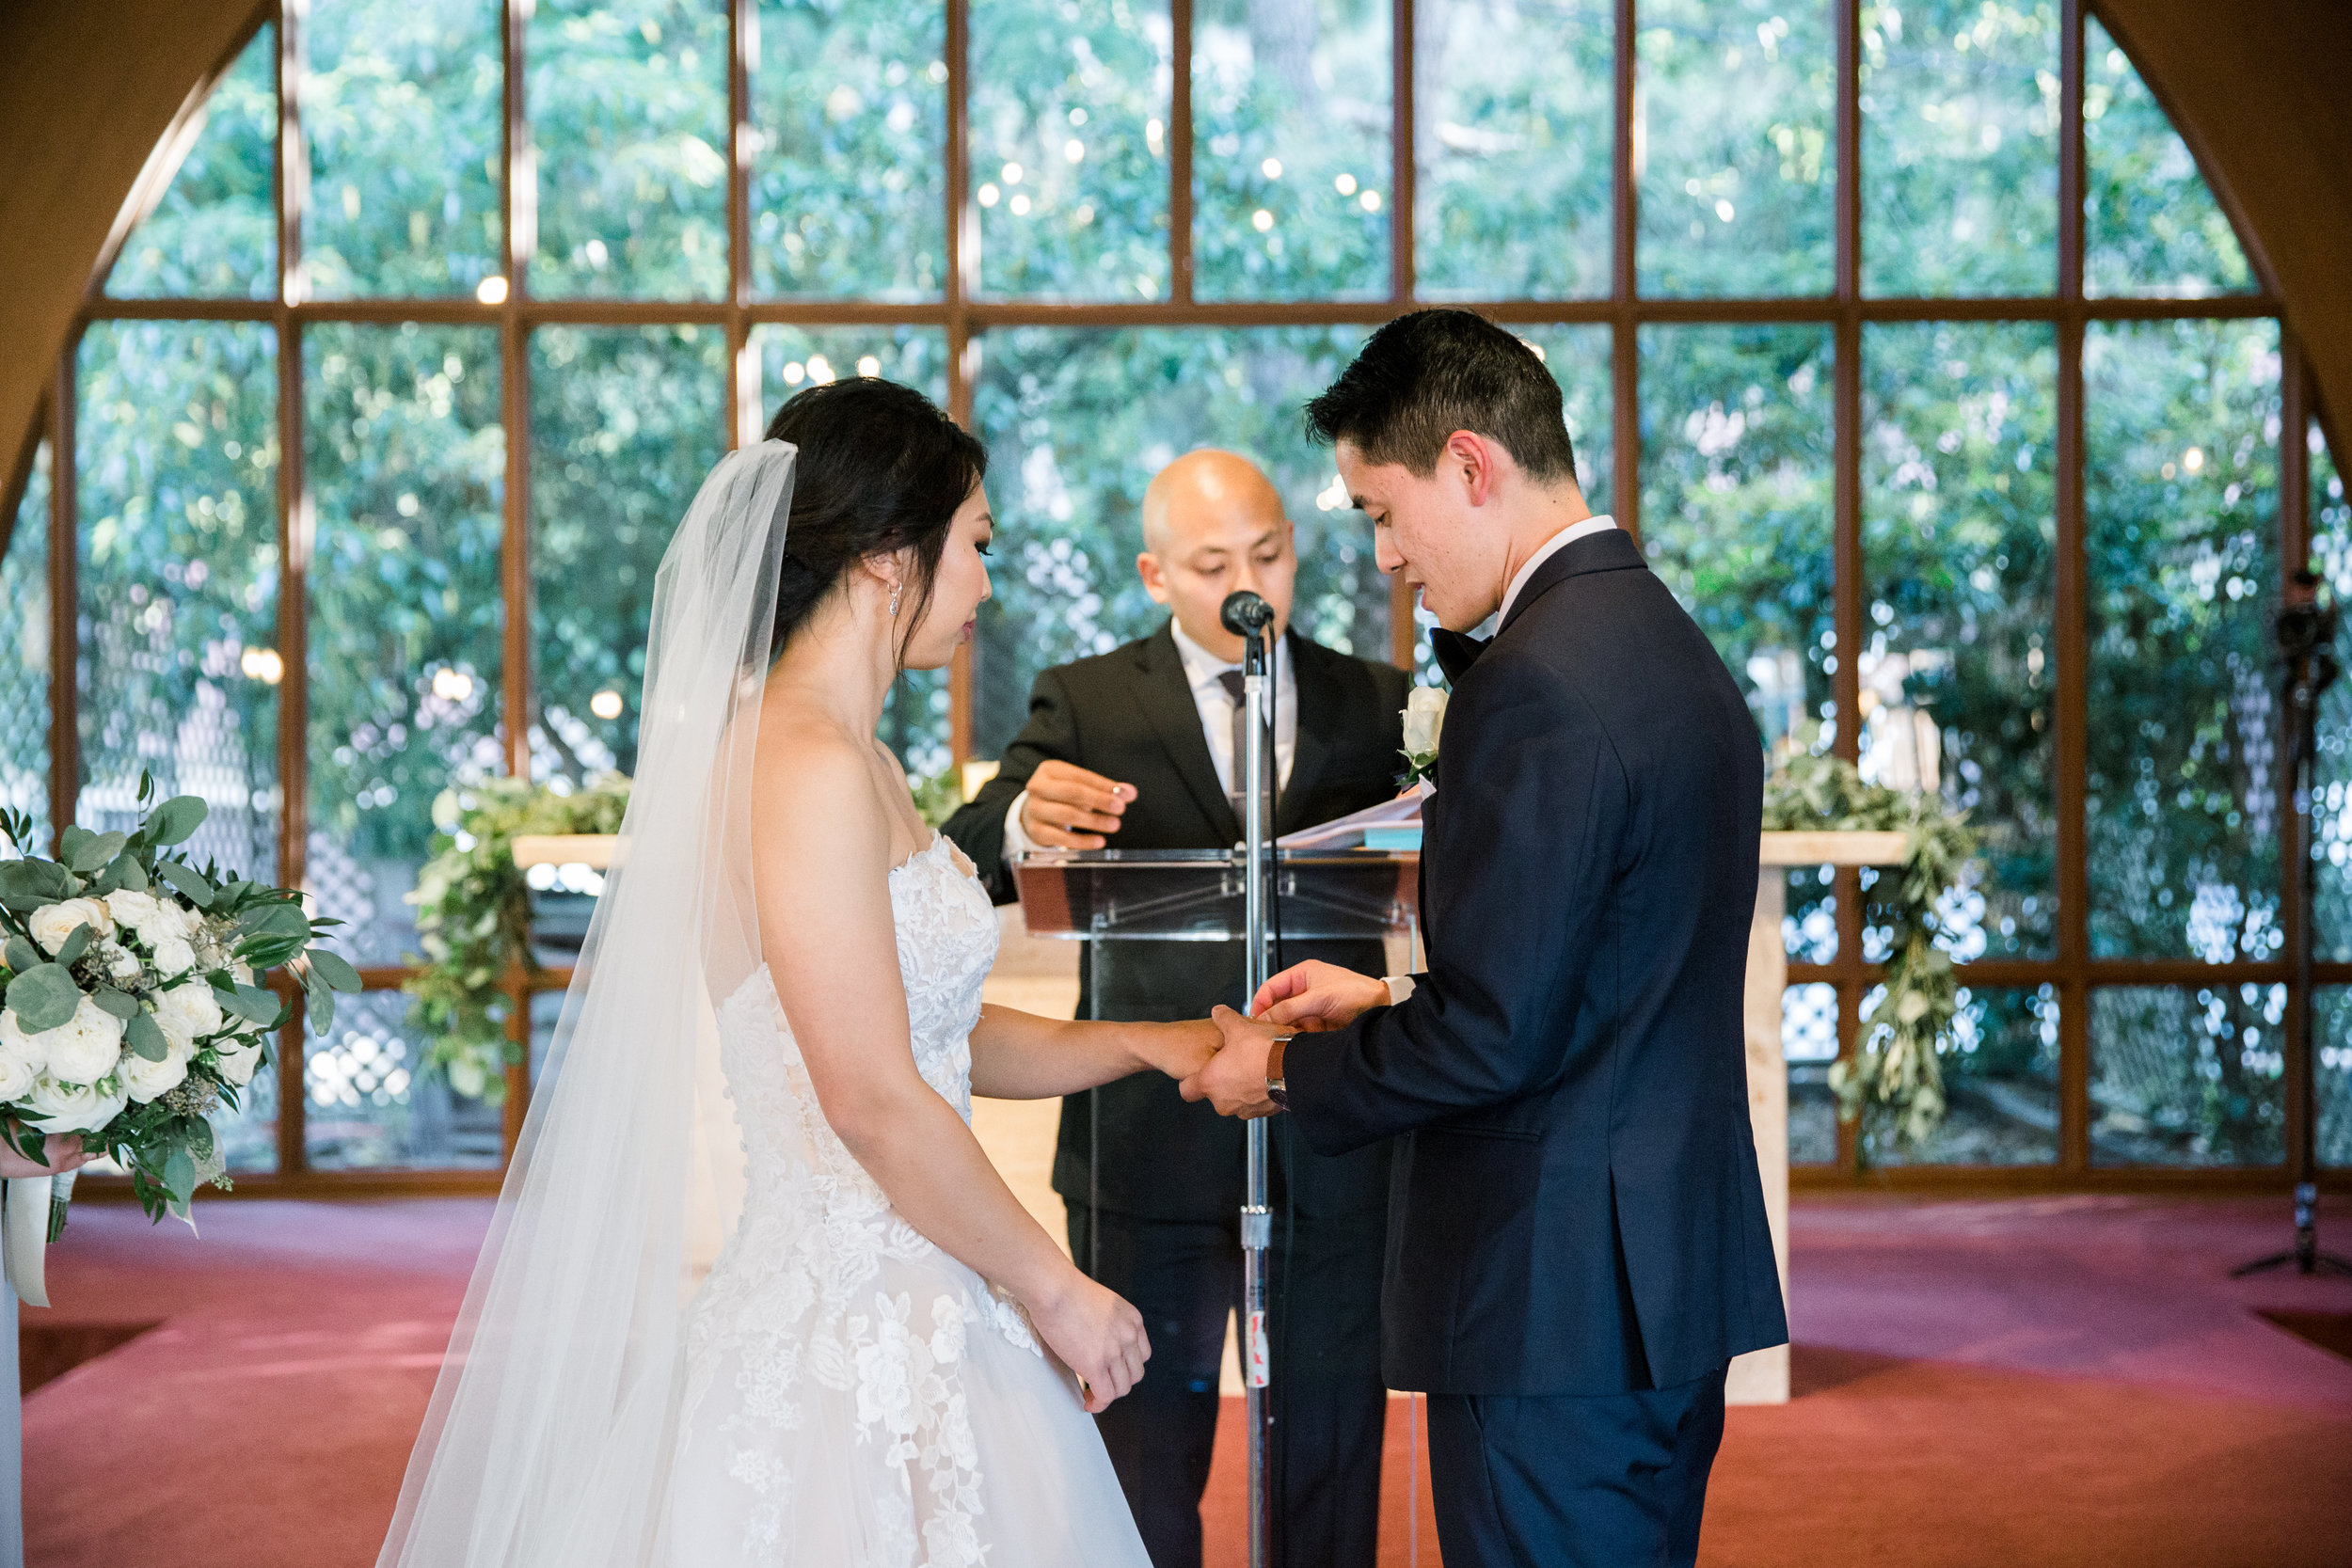 NathalieCheng_SNWedding_Ceremony_124.jpg